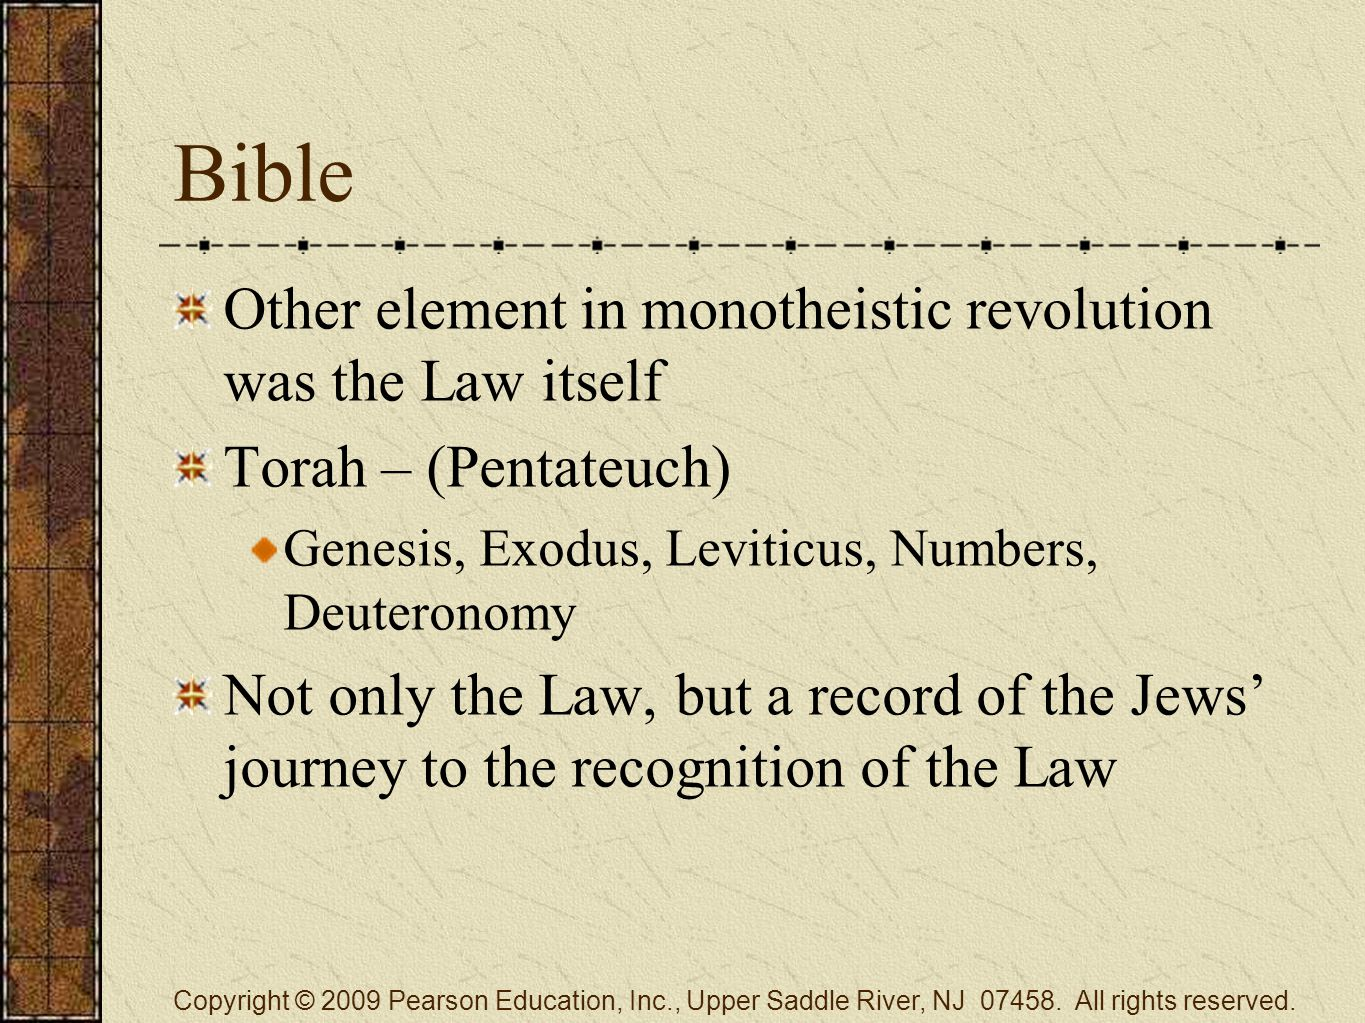 Bible Other element in monotheistic revolution was the Law itself Torah – (Pentateuch) Genesis, Exodus, Leviticus, Numbers, Deuteronomy Not only the Law, but a record of the Jews' journey to the recognition of the Law Copyright © 2009 Pearson Education, Inc., Upper Saddle River, NJ 07458.